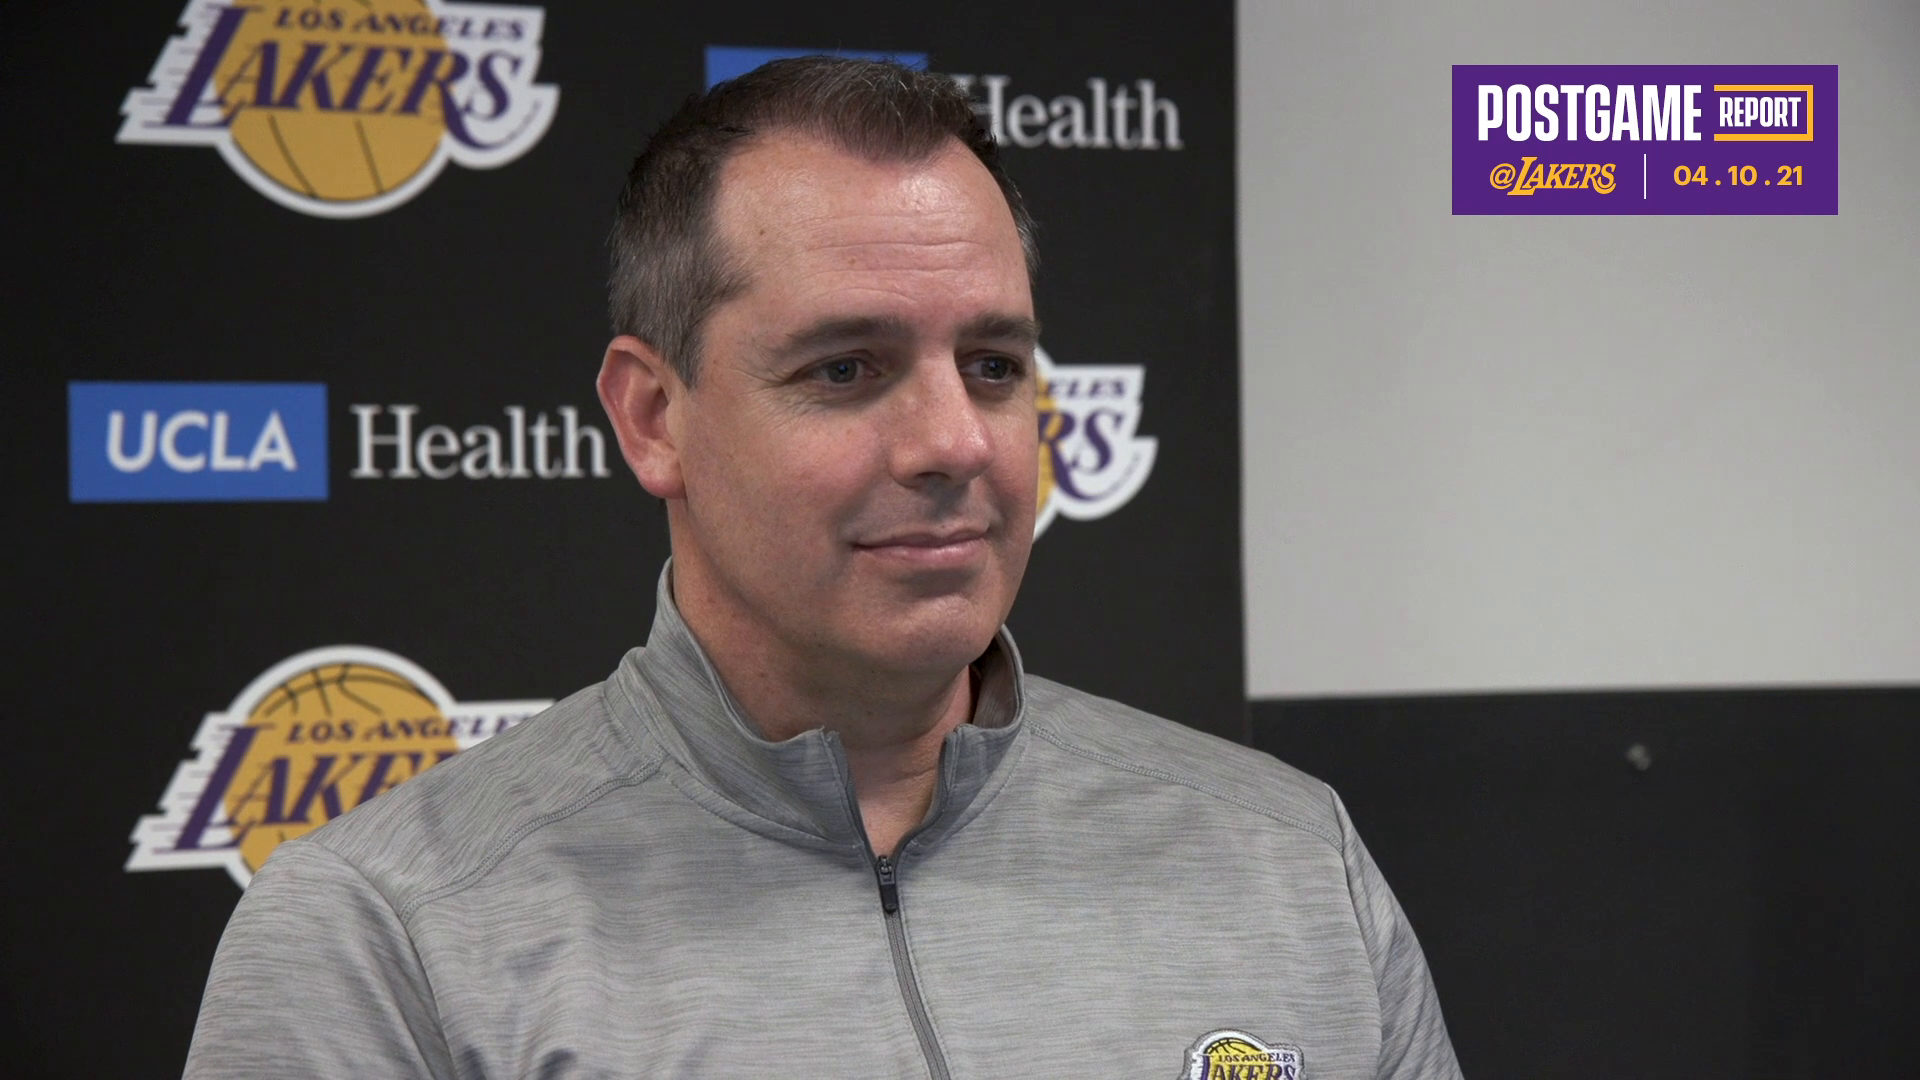 Lakers Postgame: Frank Vogel (4/10/21)